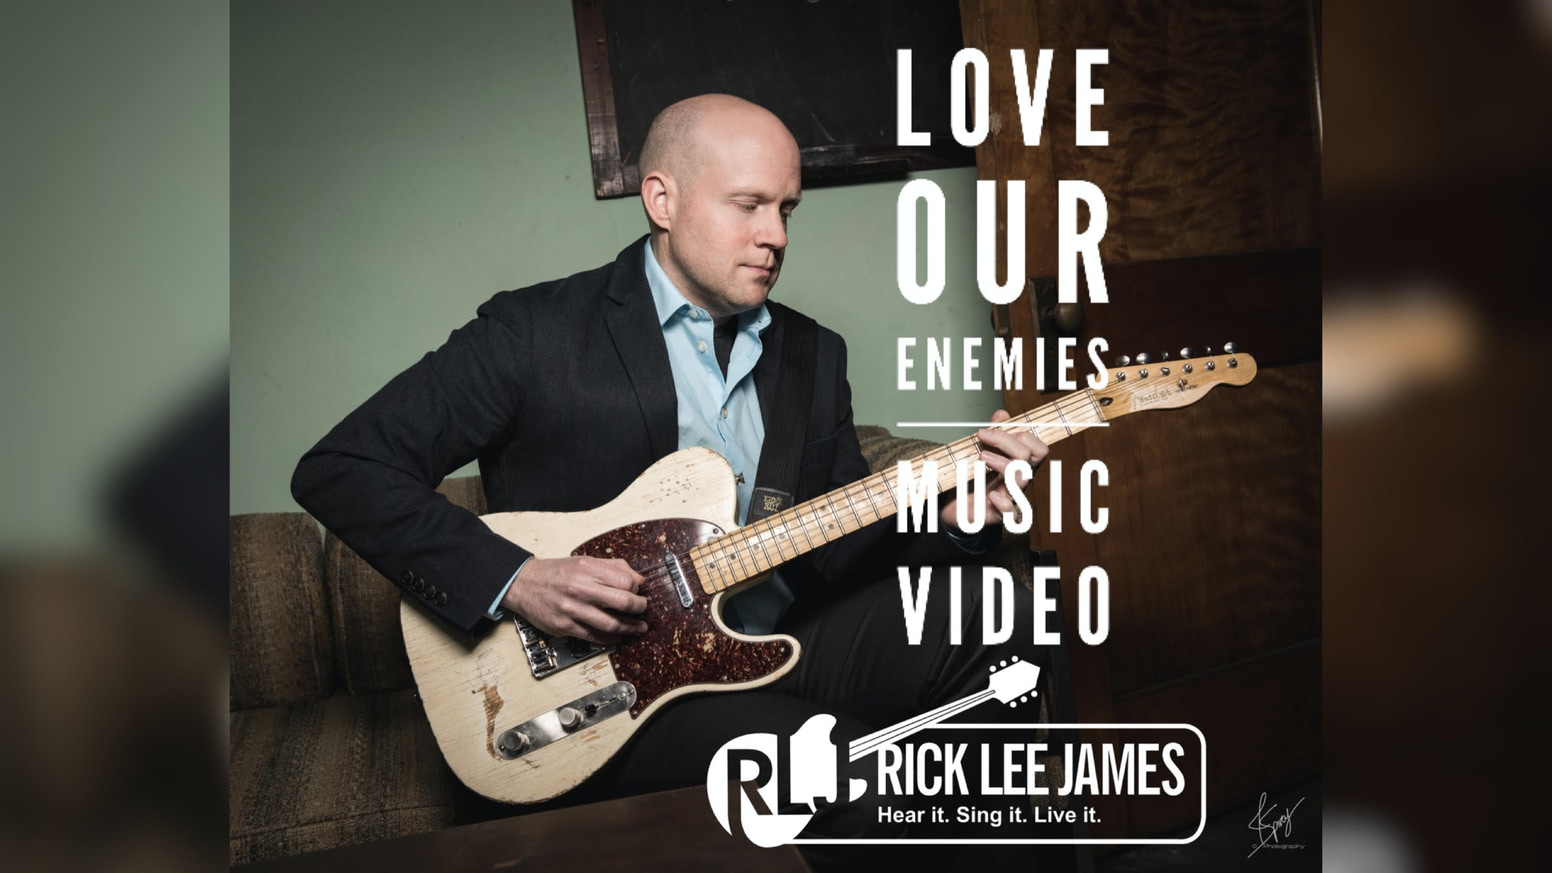 LOVE OUR ENEMIES Music Video from Rick Lee James album THUNDER.